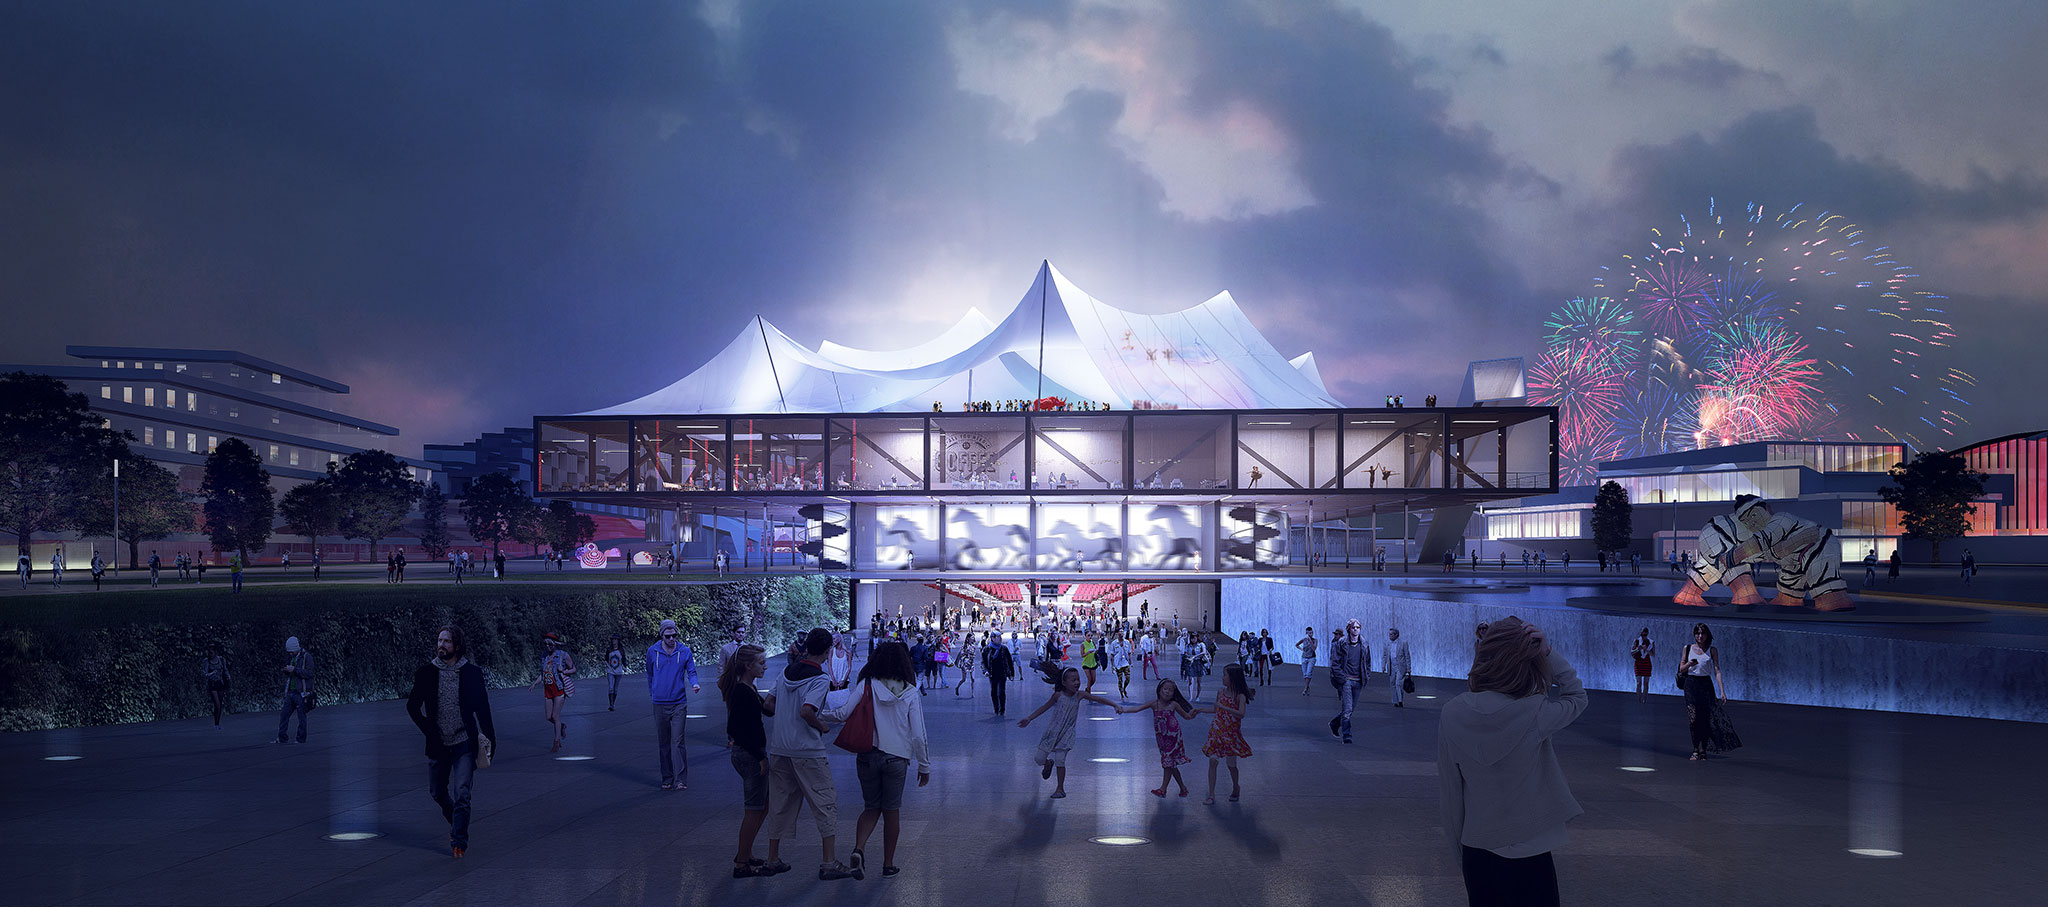 Nocturnal exterior render. Clément Blanchet Architecture wins the international competition for the design of the new Circus ³. Courtesy of the architects